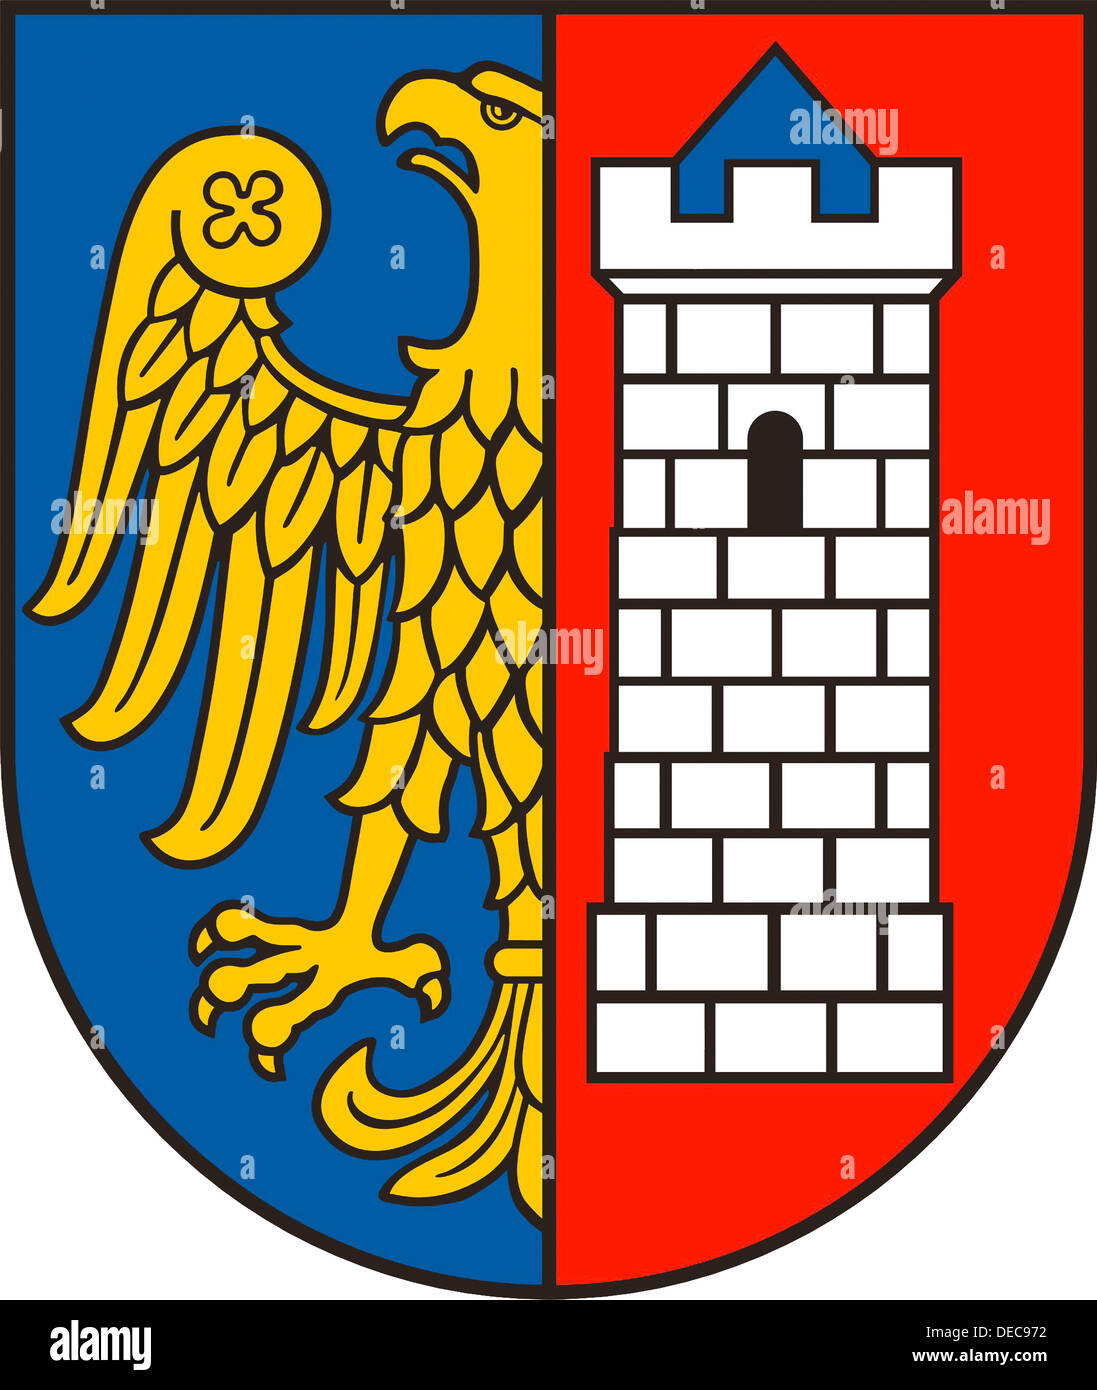 Coat of arms of the Polish city of Gliwice. - Stock Image